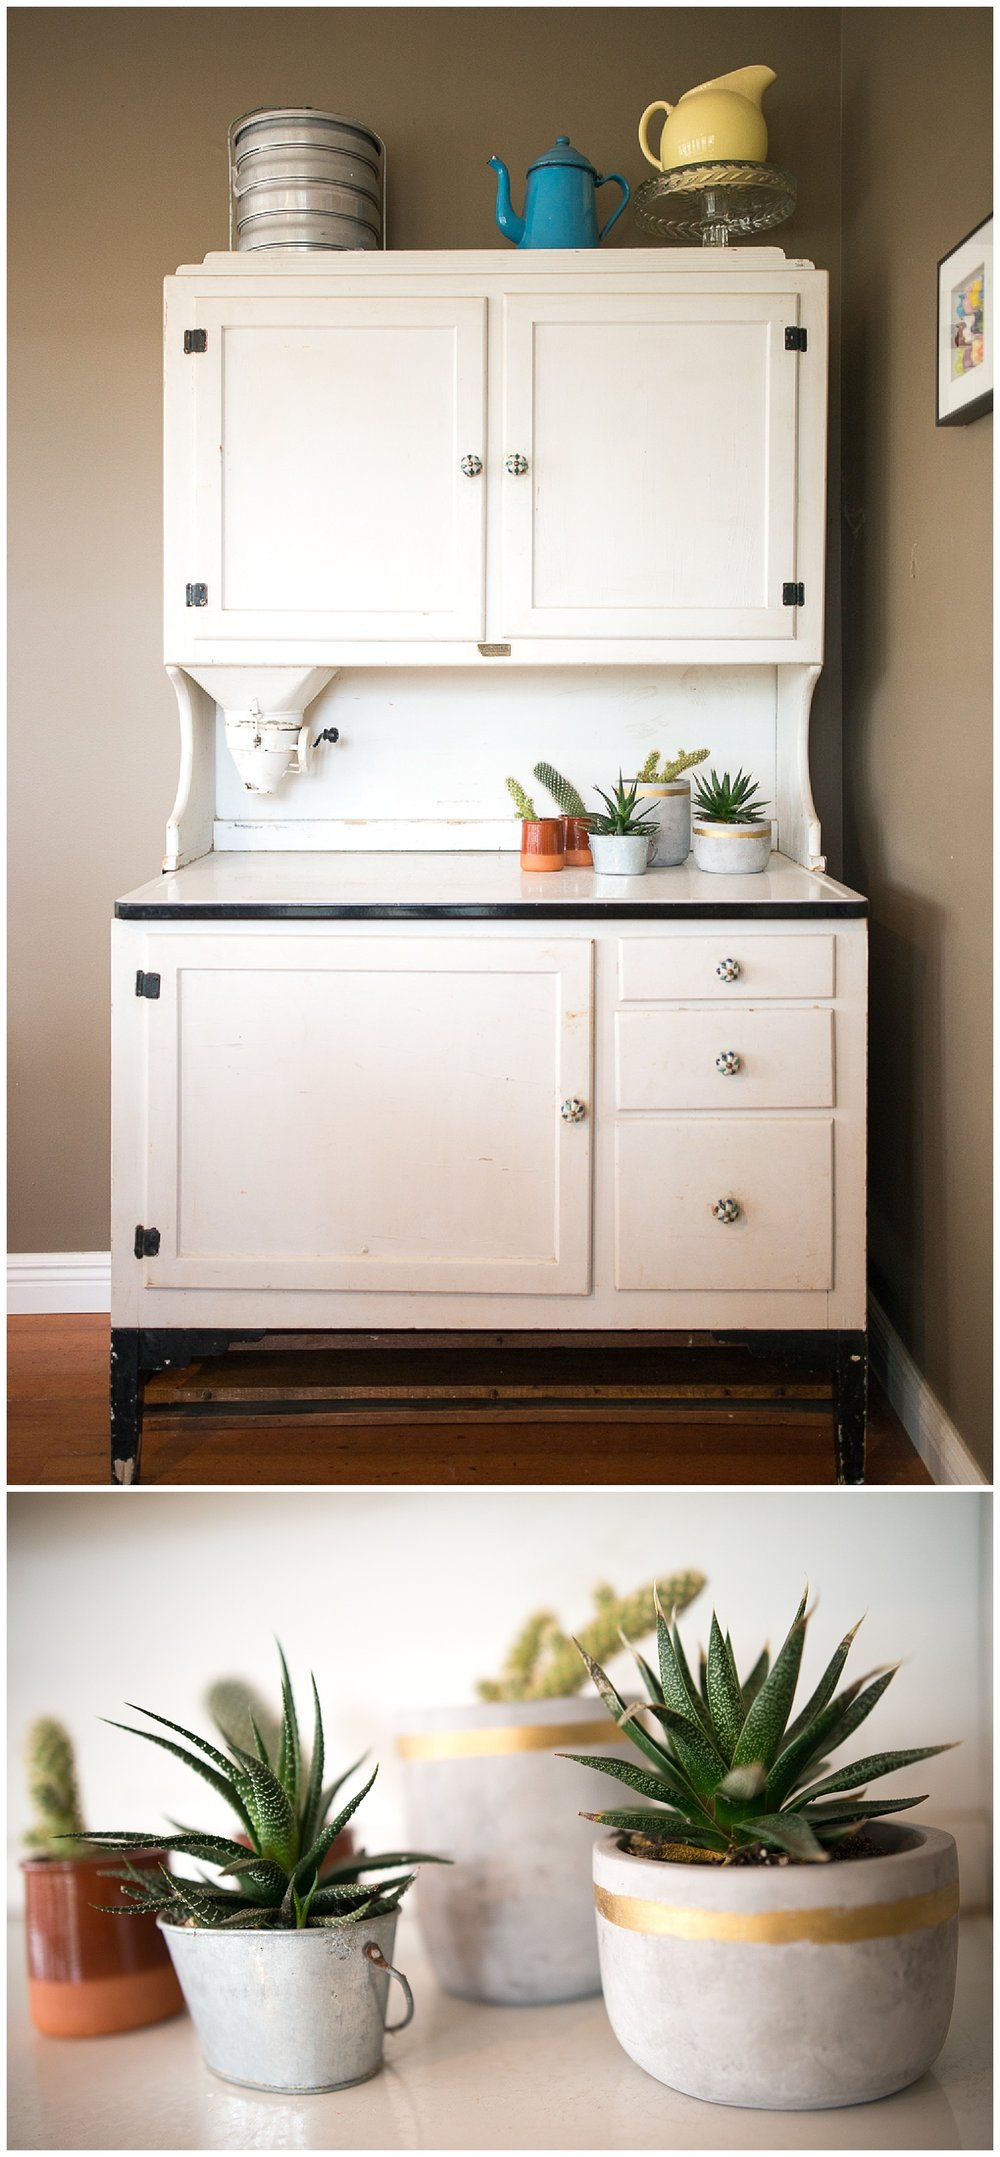 In the corner of the dining room sits the Hoosier cabinet that is one of Helen's favorite things. It was purchased at an antique shop when she and John got married and she added her own touch by changing the knobs.  The ceramic and gold pots came from Fresh Digs.